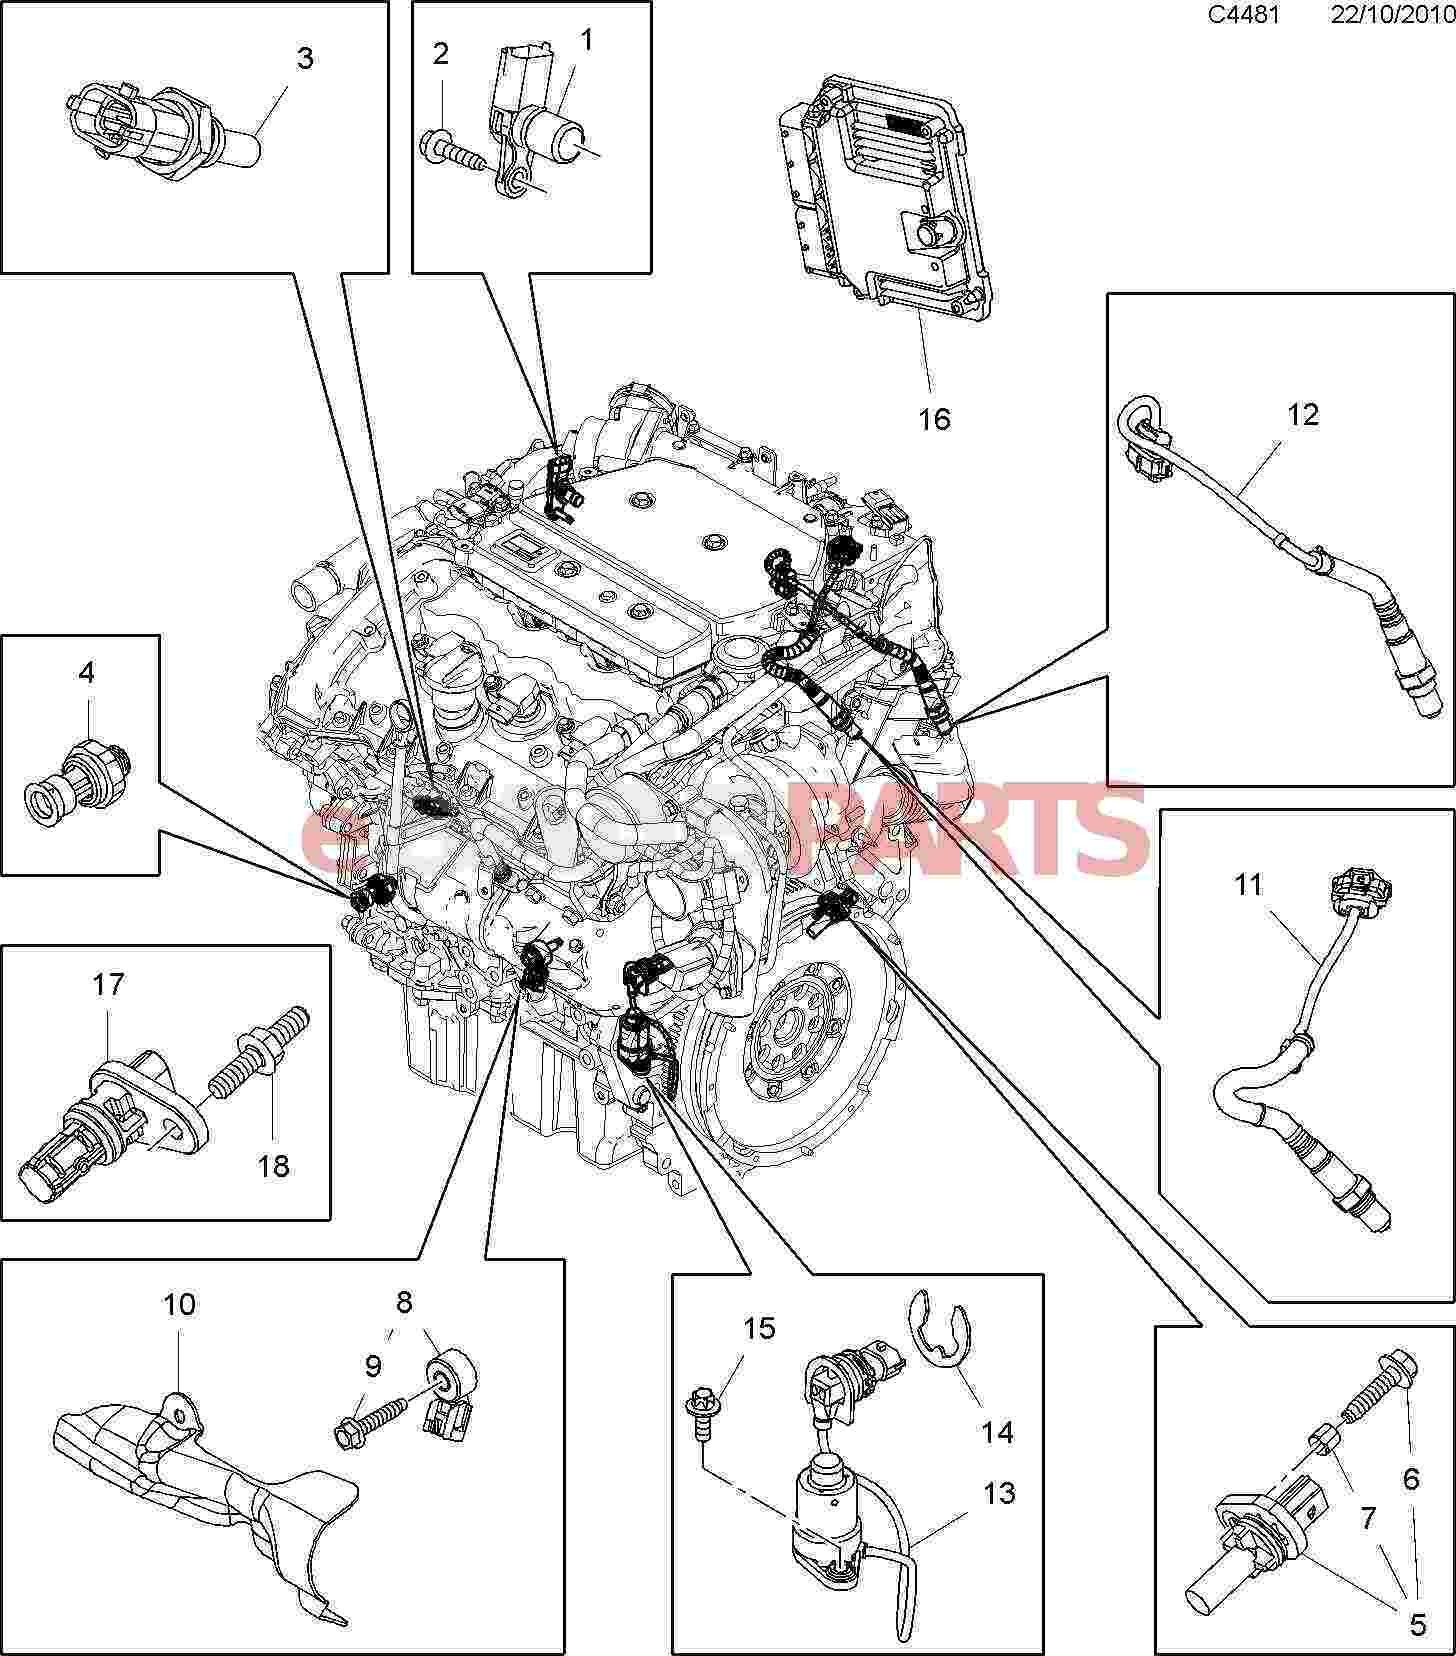 83 jeep cj7 wiring diagram free picture wiring librarysaab 9 3 wiring auto electrical wiring diagram 2008 dodge avenger wiring diagram jeep cj7